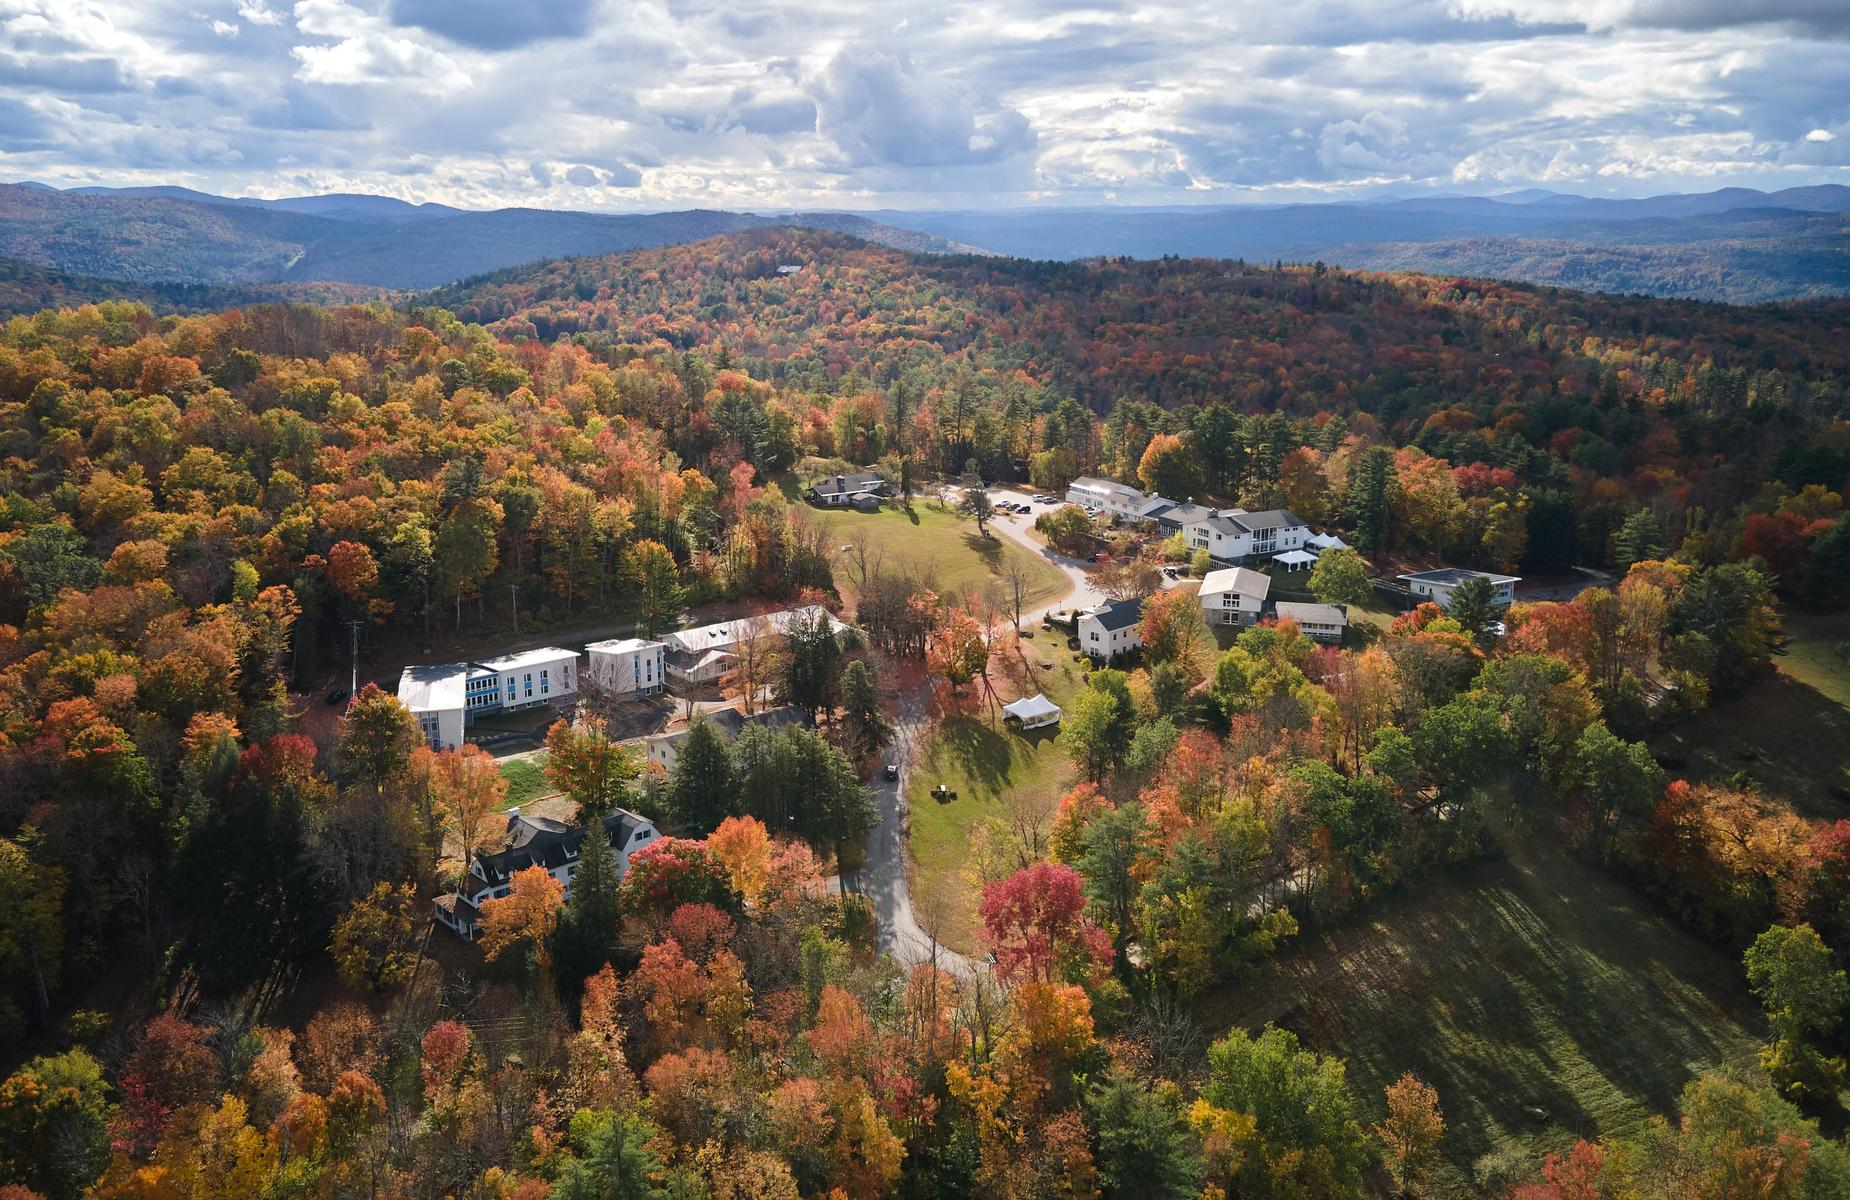 An aerial view of The White Mountain School.